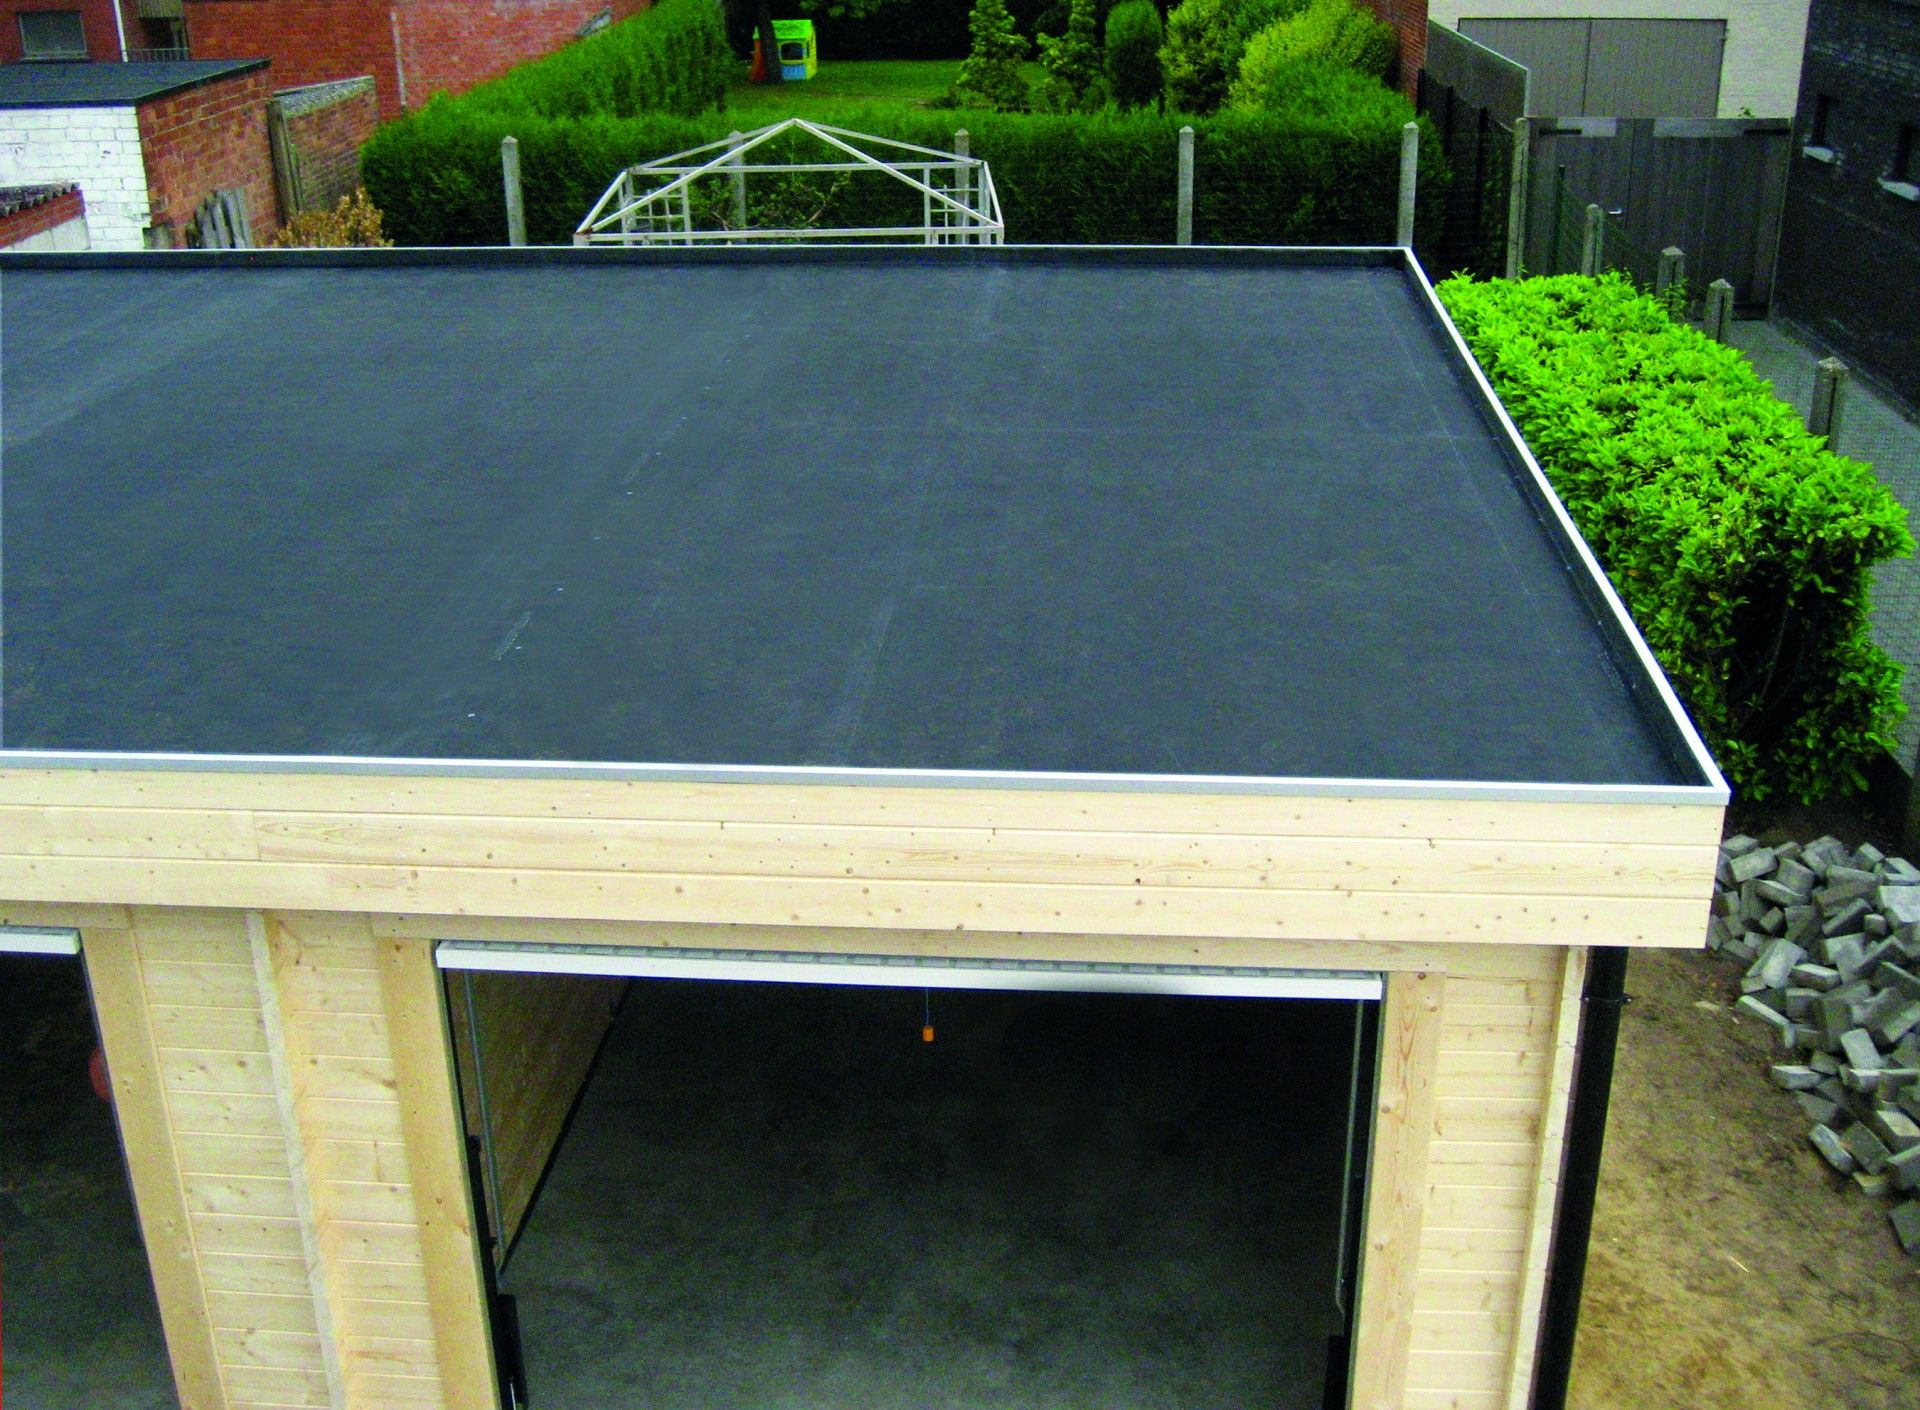 The Firestone Rubbercover™ Epdm Roofing System Is The Ideal ... intérieur Piscine Epdm